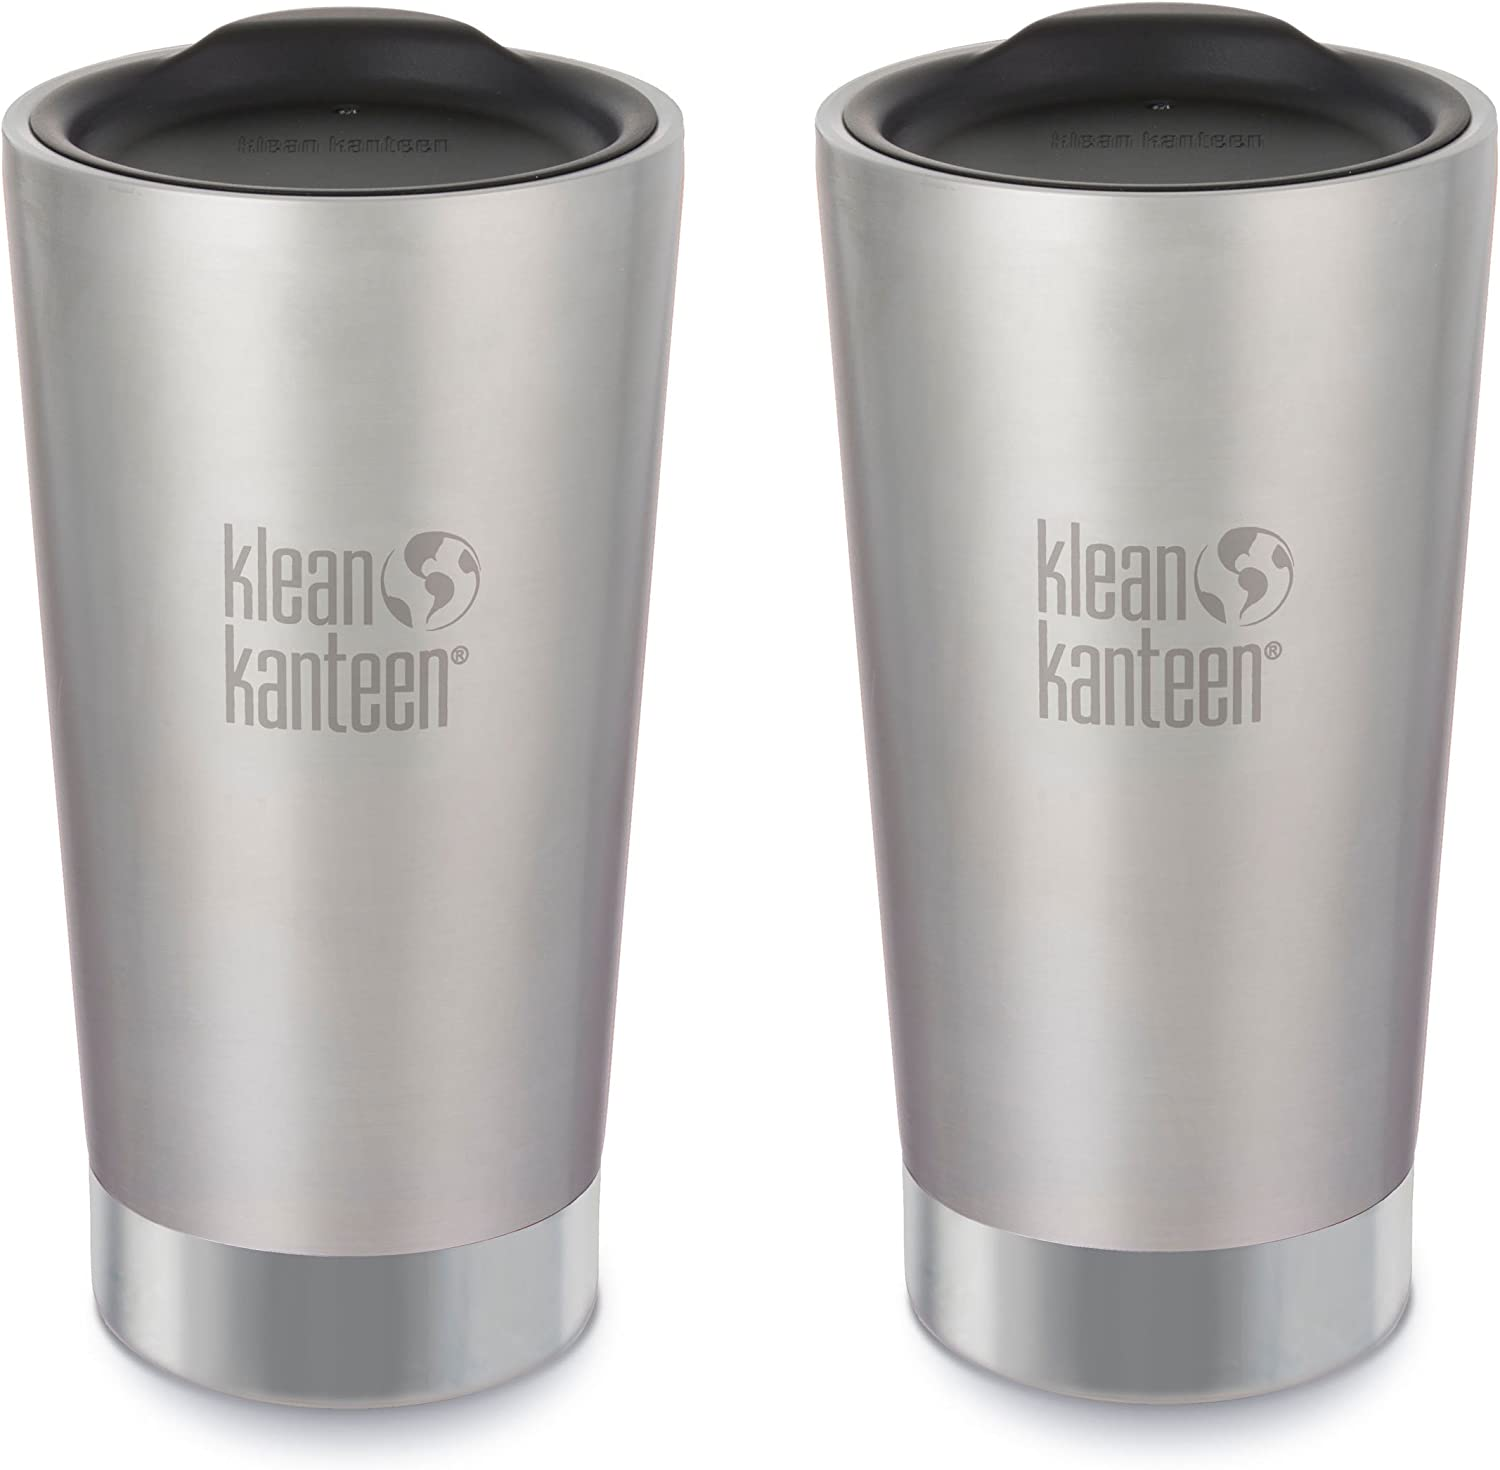 Klean Kanteen 16oz Vacuum Insulated Stainless Steel Pint Cup Tumbler